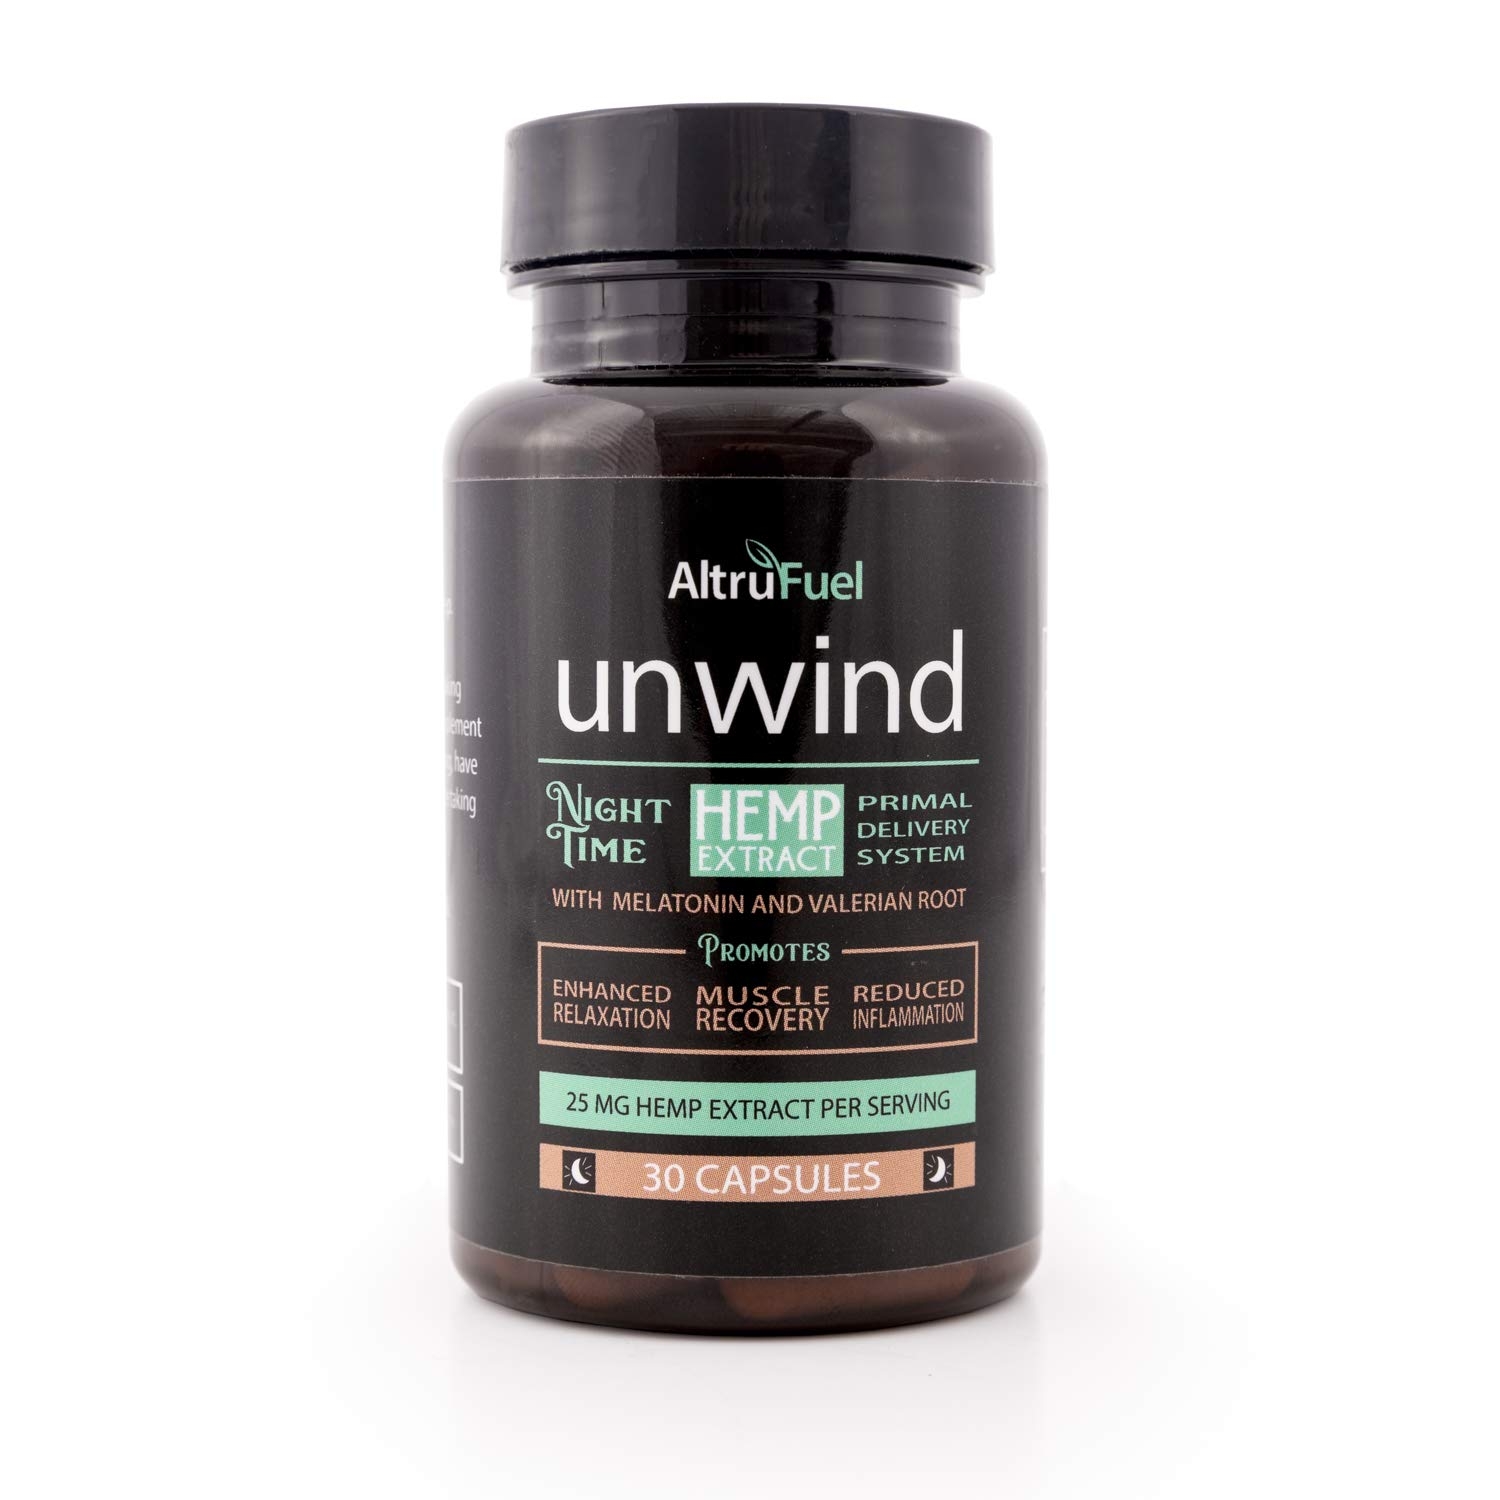 Amazon.com: AltruFuel Unwind - Natural Hemp Extract with Melatonin and Valerian Root [Promotes Sleep, Muscle Recovery and Relaxation] - 30 Vegan Caps: ...